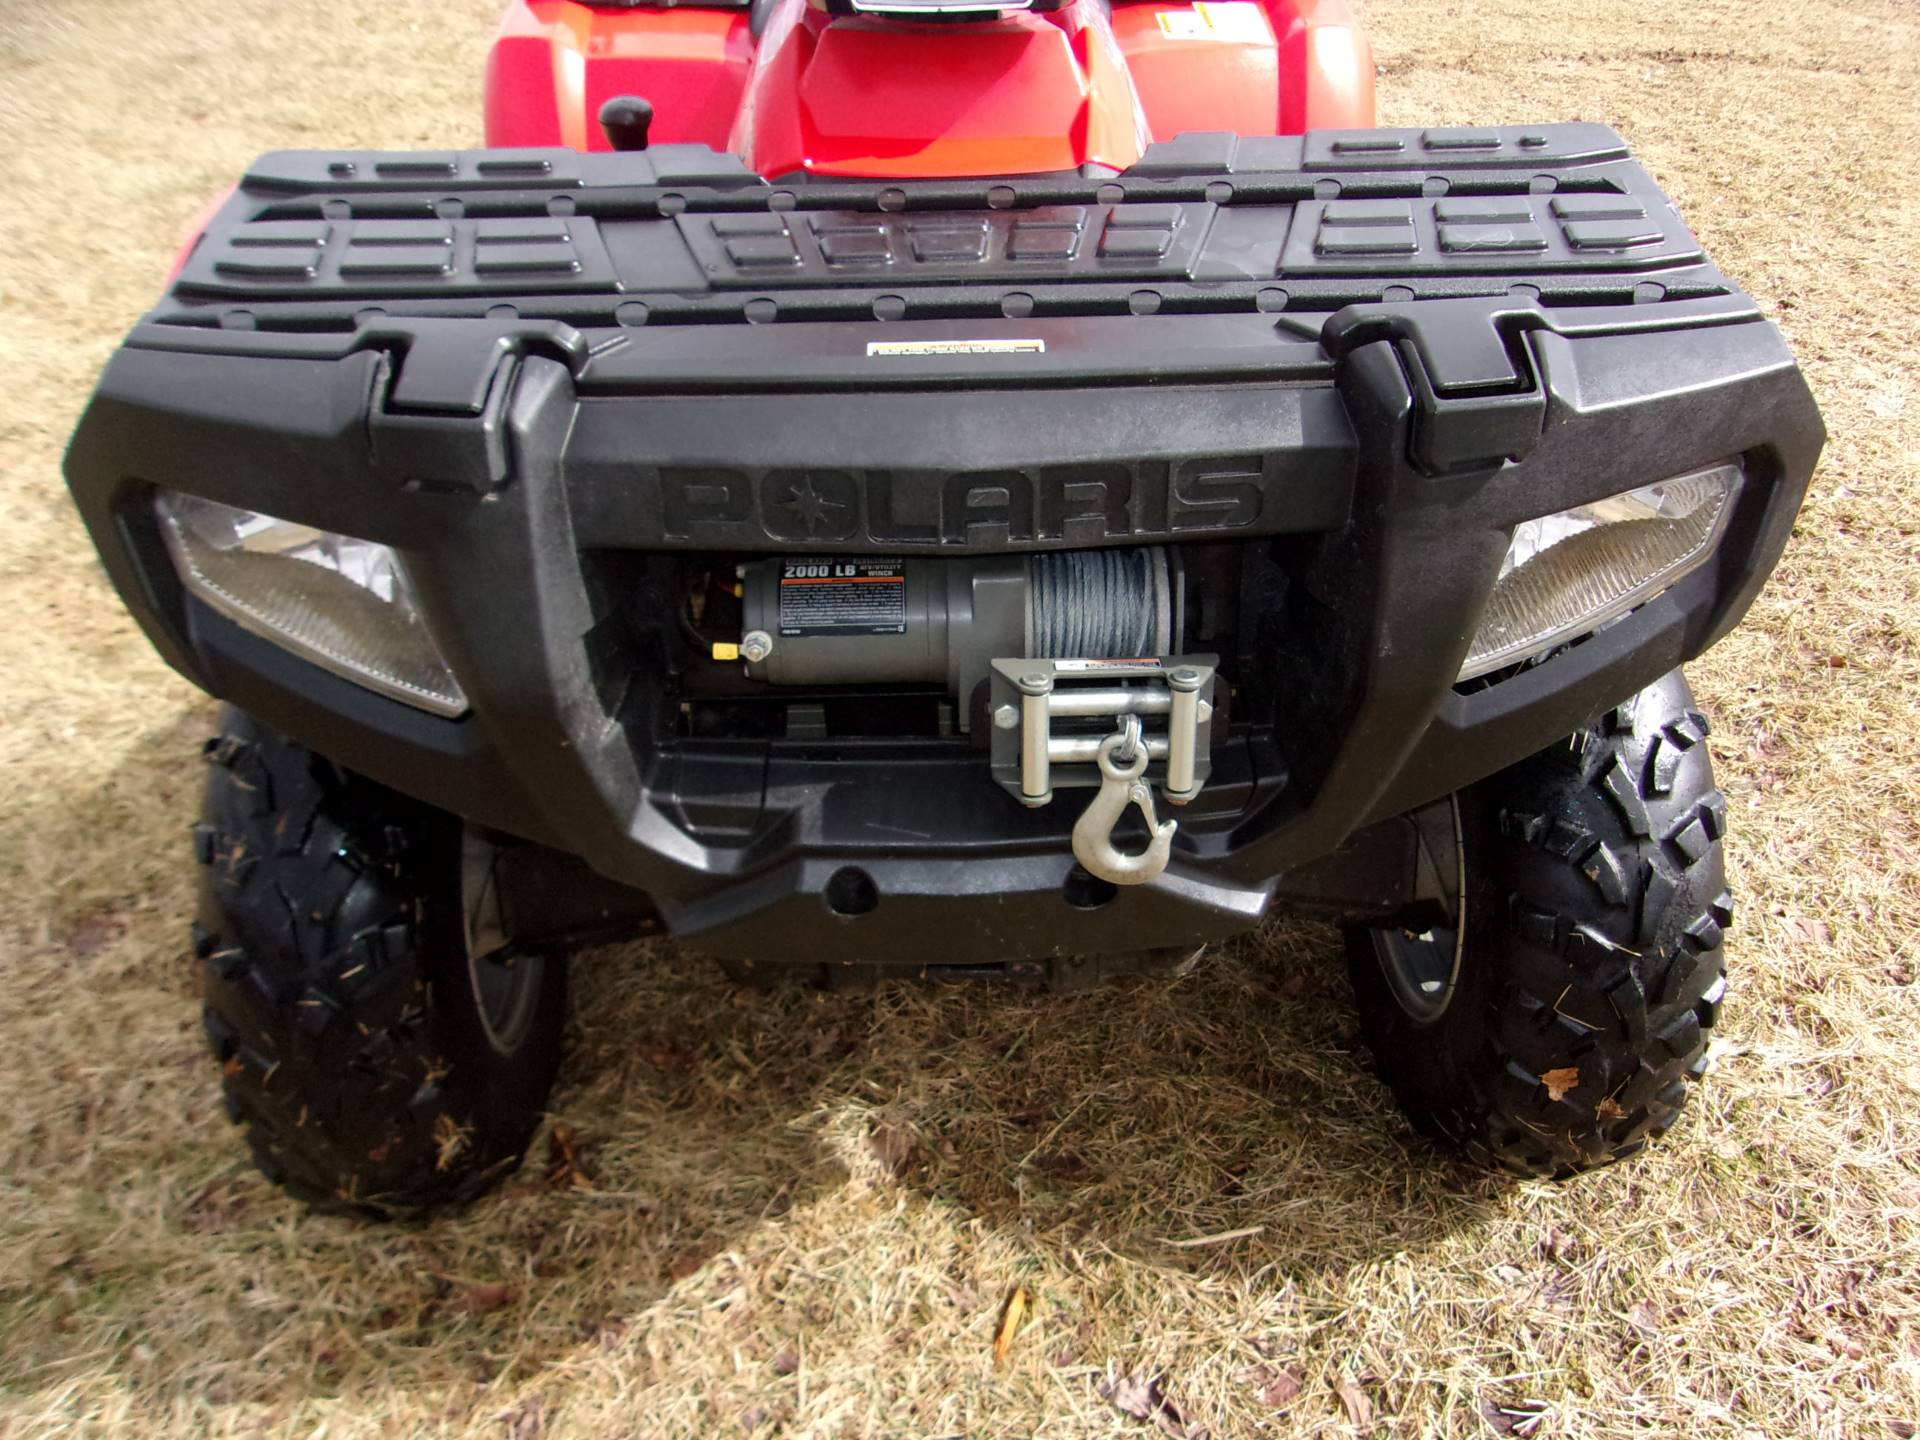 2005 Polaris Sportsman 400 in Mukwonago, Wisconsin